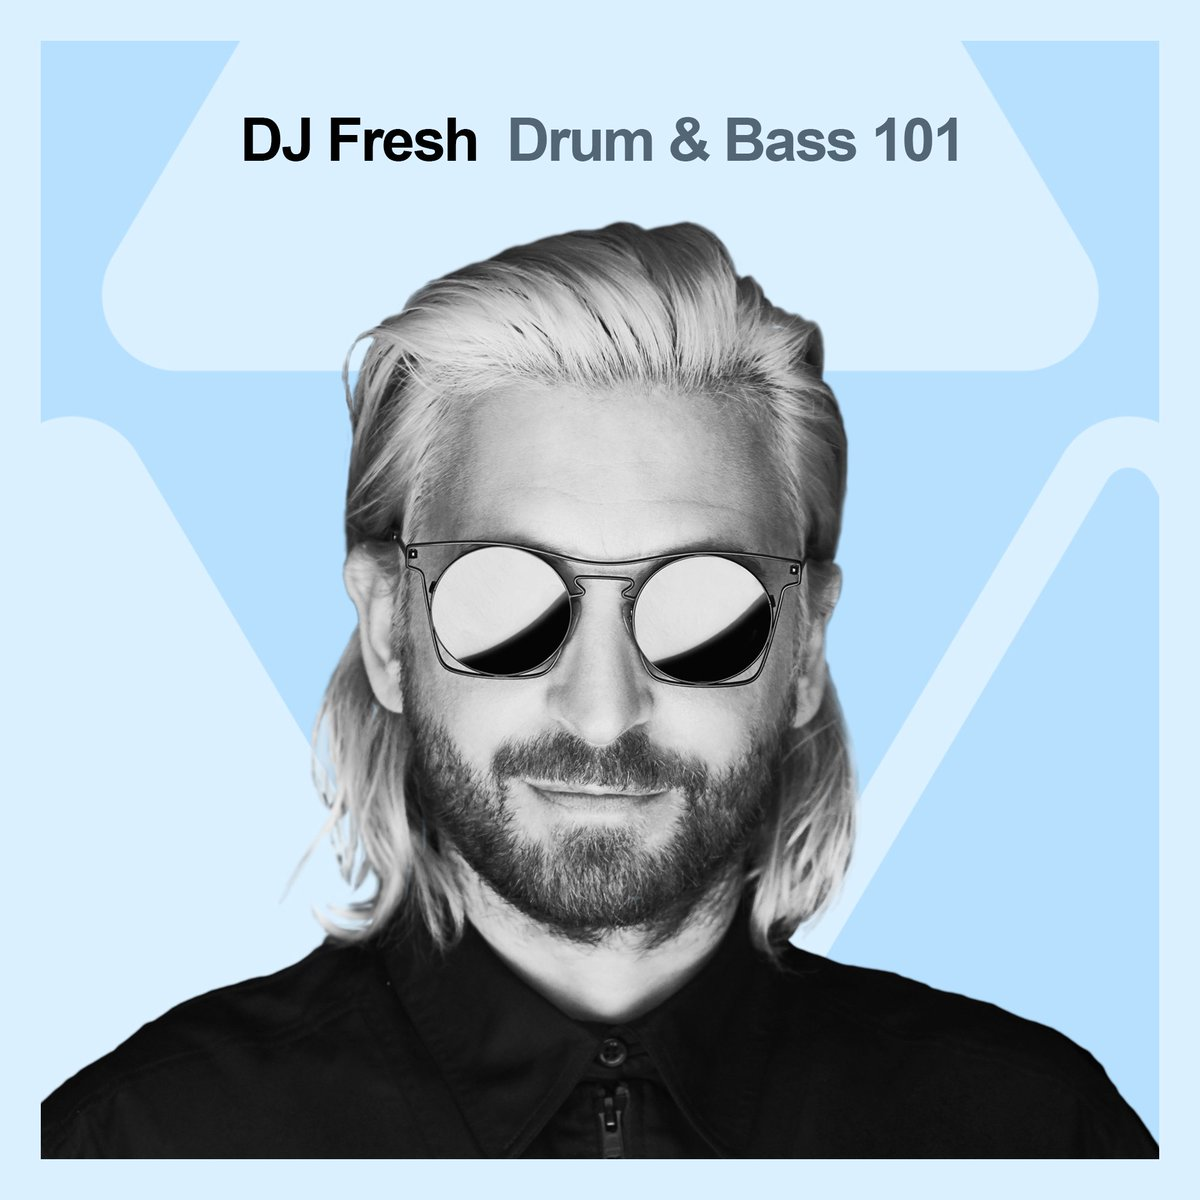 The freshest new Drum & Bass cuts, delivered straight to your door...